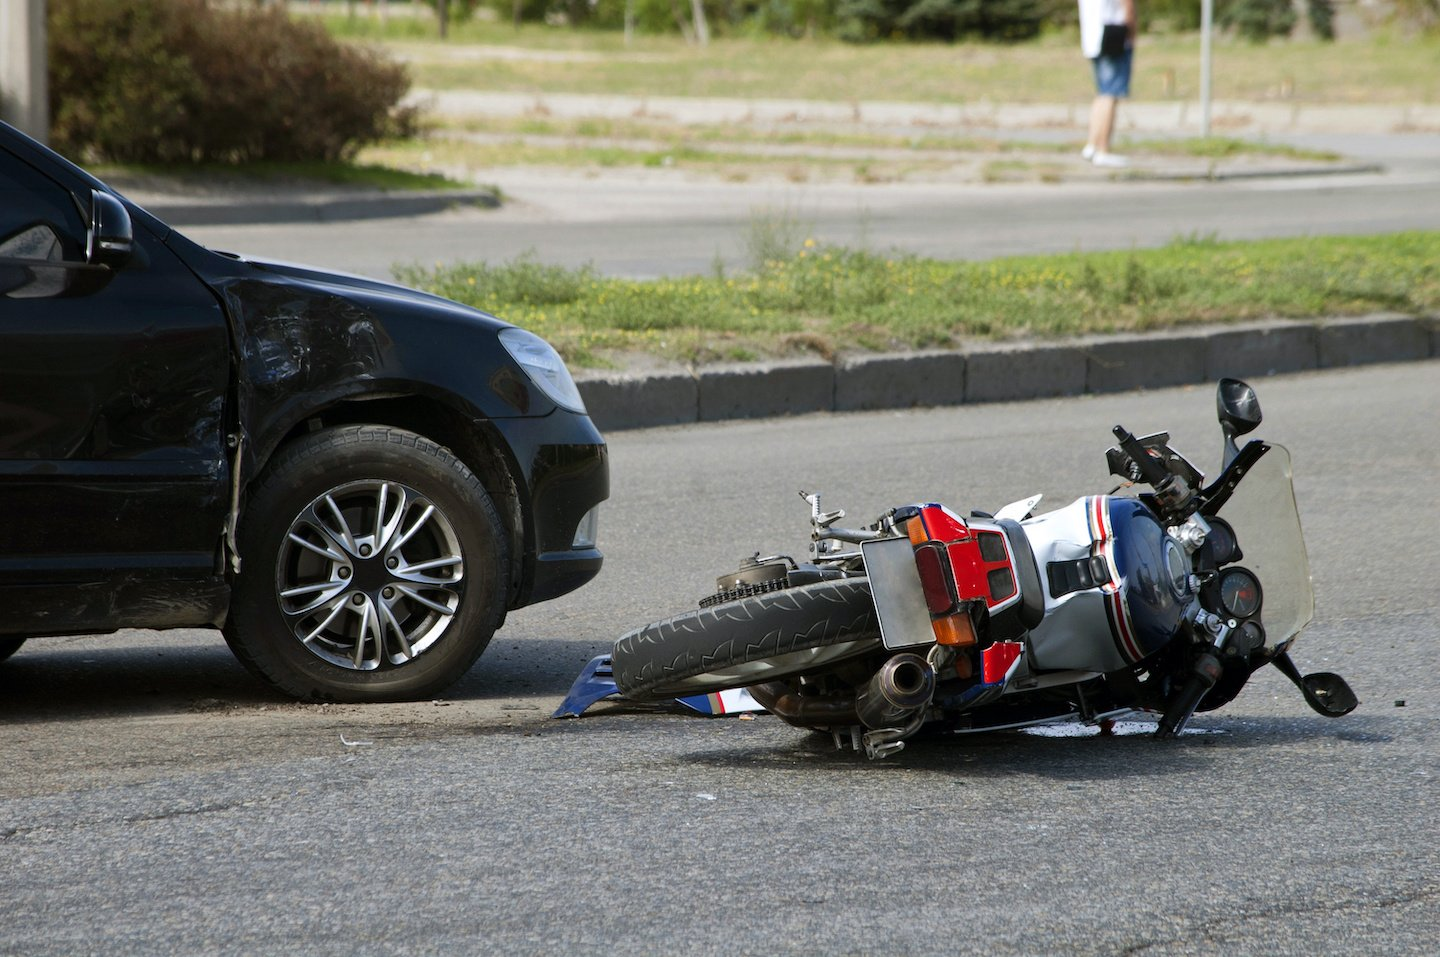 Motorcycle and Car Accident on Street